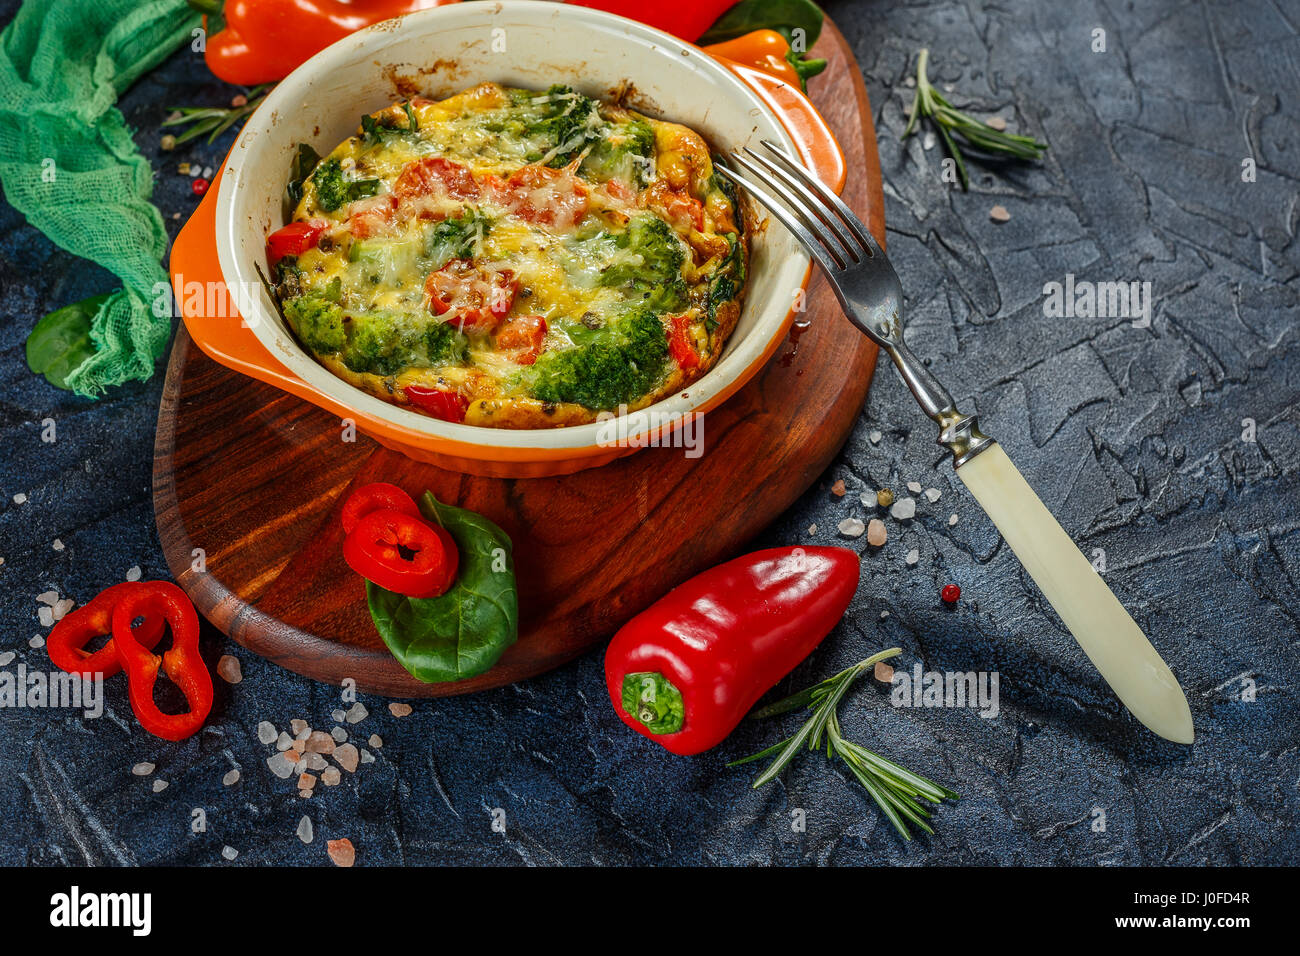 Frittata with broccoli, spinach, sweet peppers and tomatoes in ceramic baking dish. Italian omelet with vegetables. - Stock Image